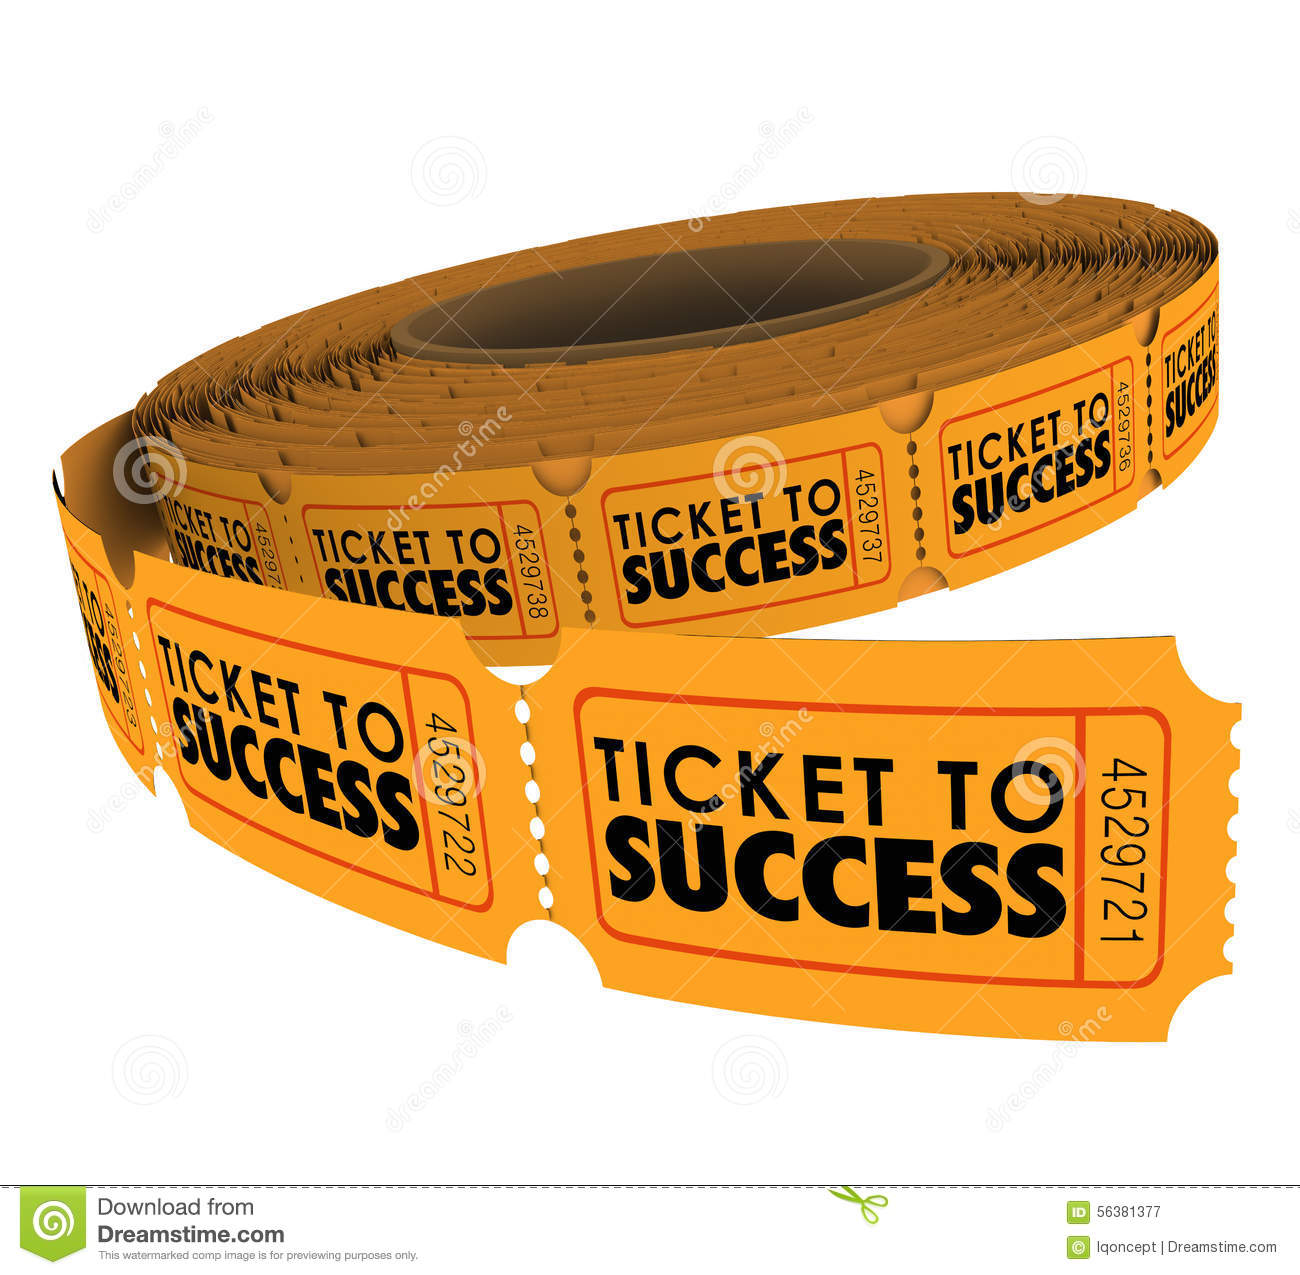 objective mission goal dictionary word definition circled stock ticket to success raffle roll achieve goal mission objective royalty stock photography